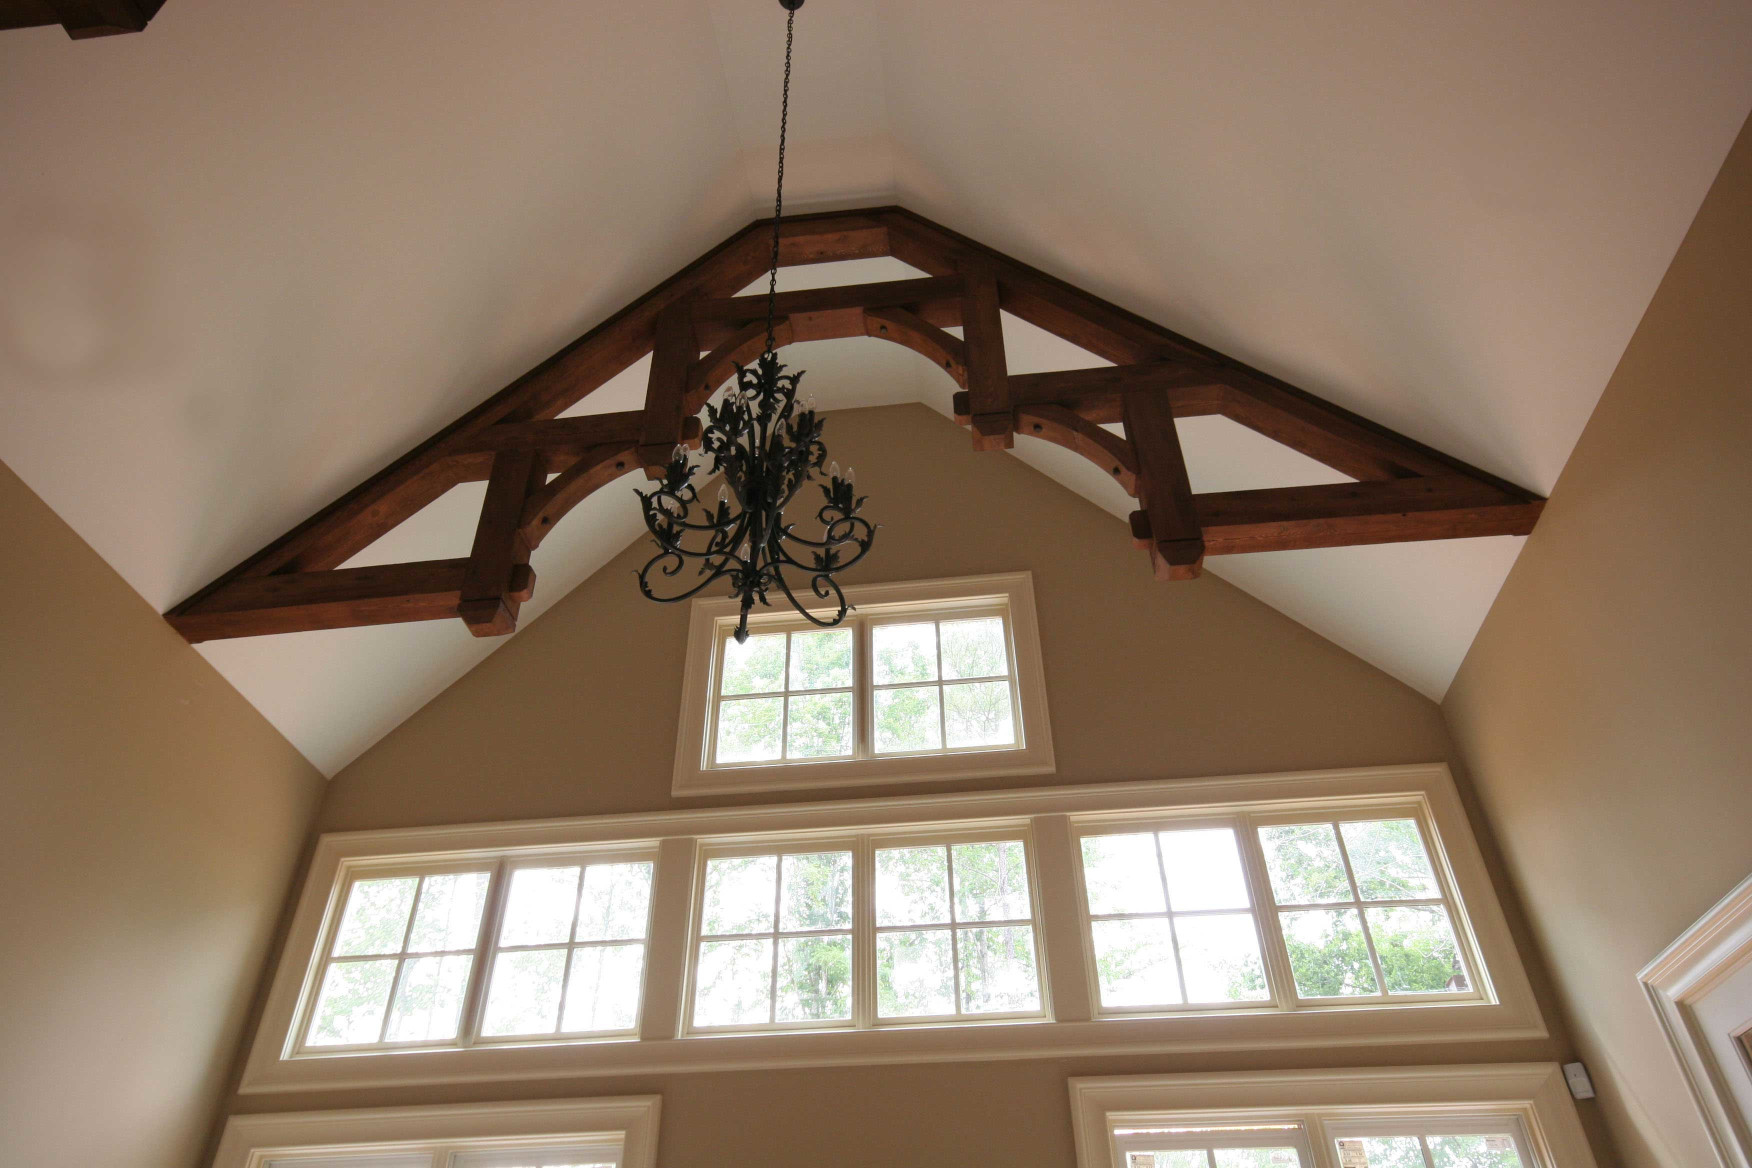 The wood braces and wood beams constructing this wood truss are a elegant accent in this Great Room.